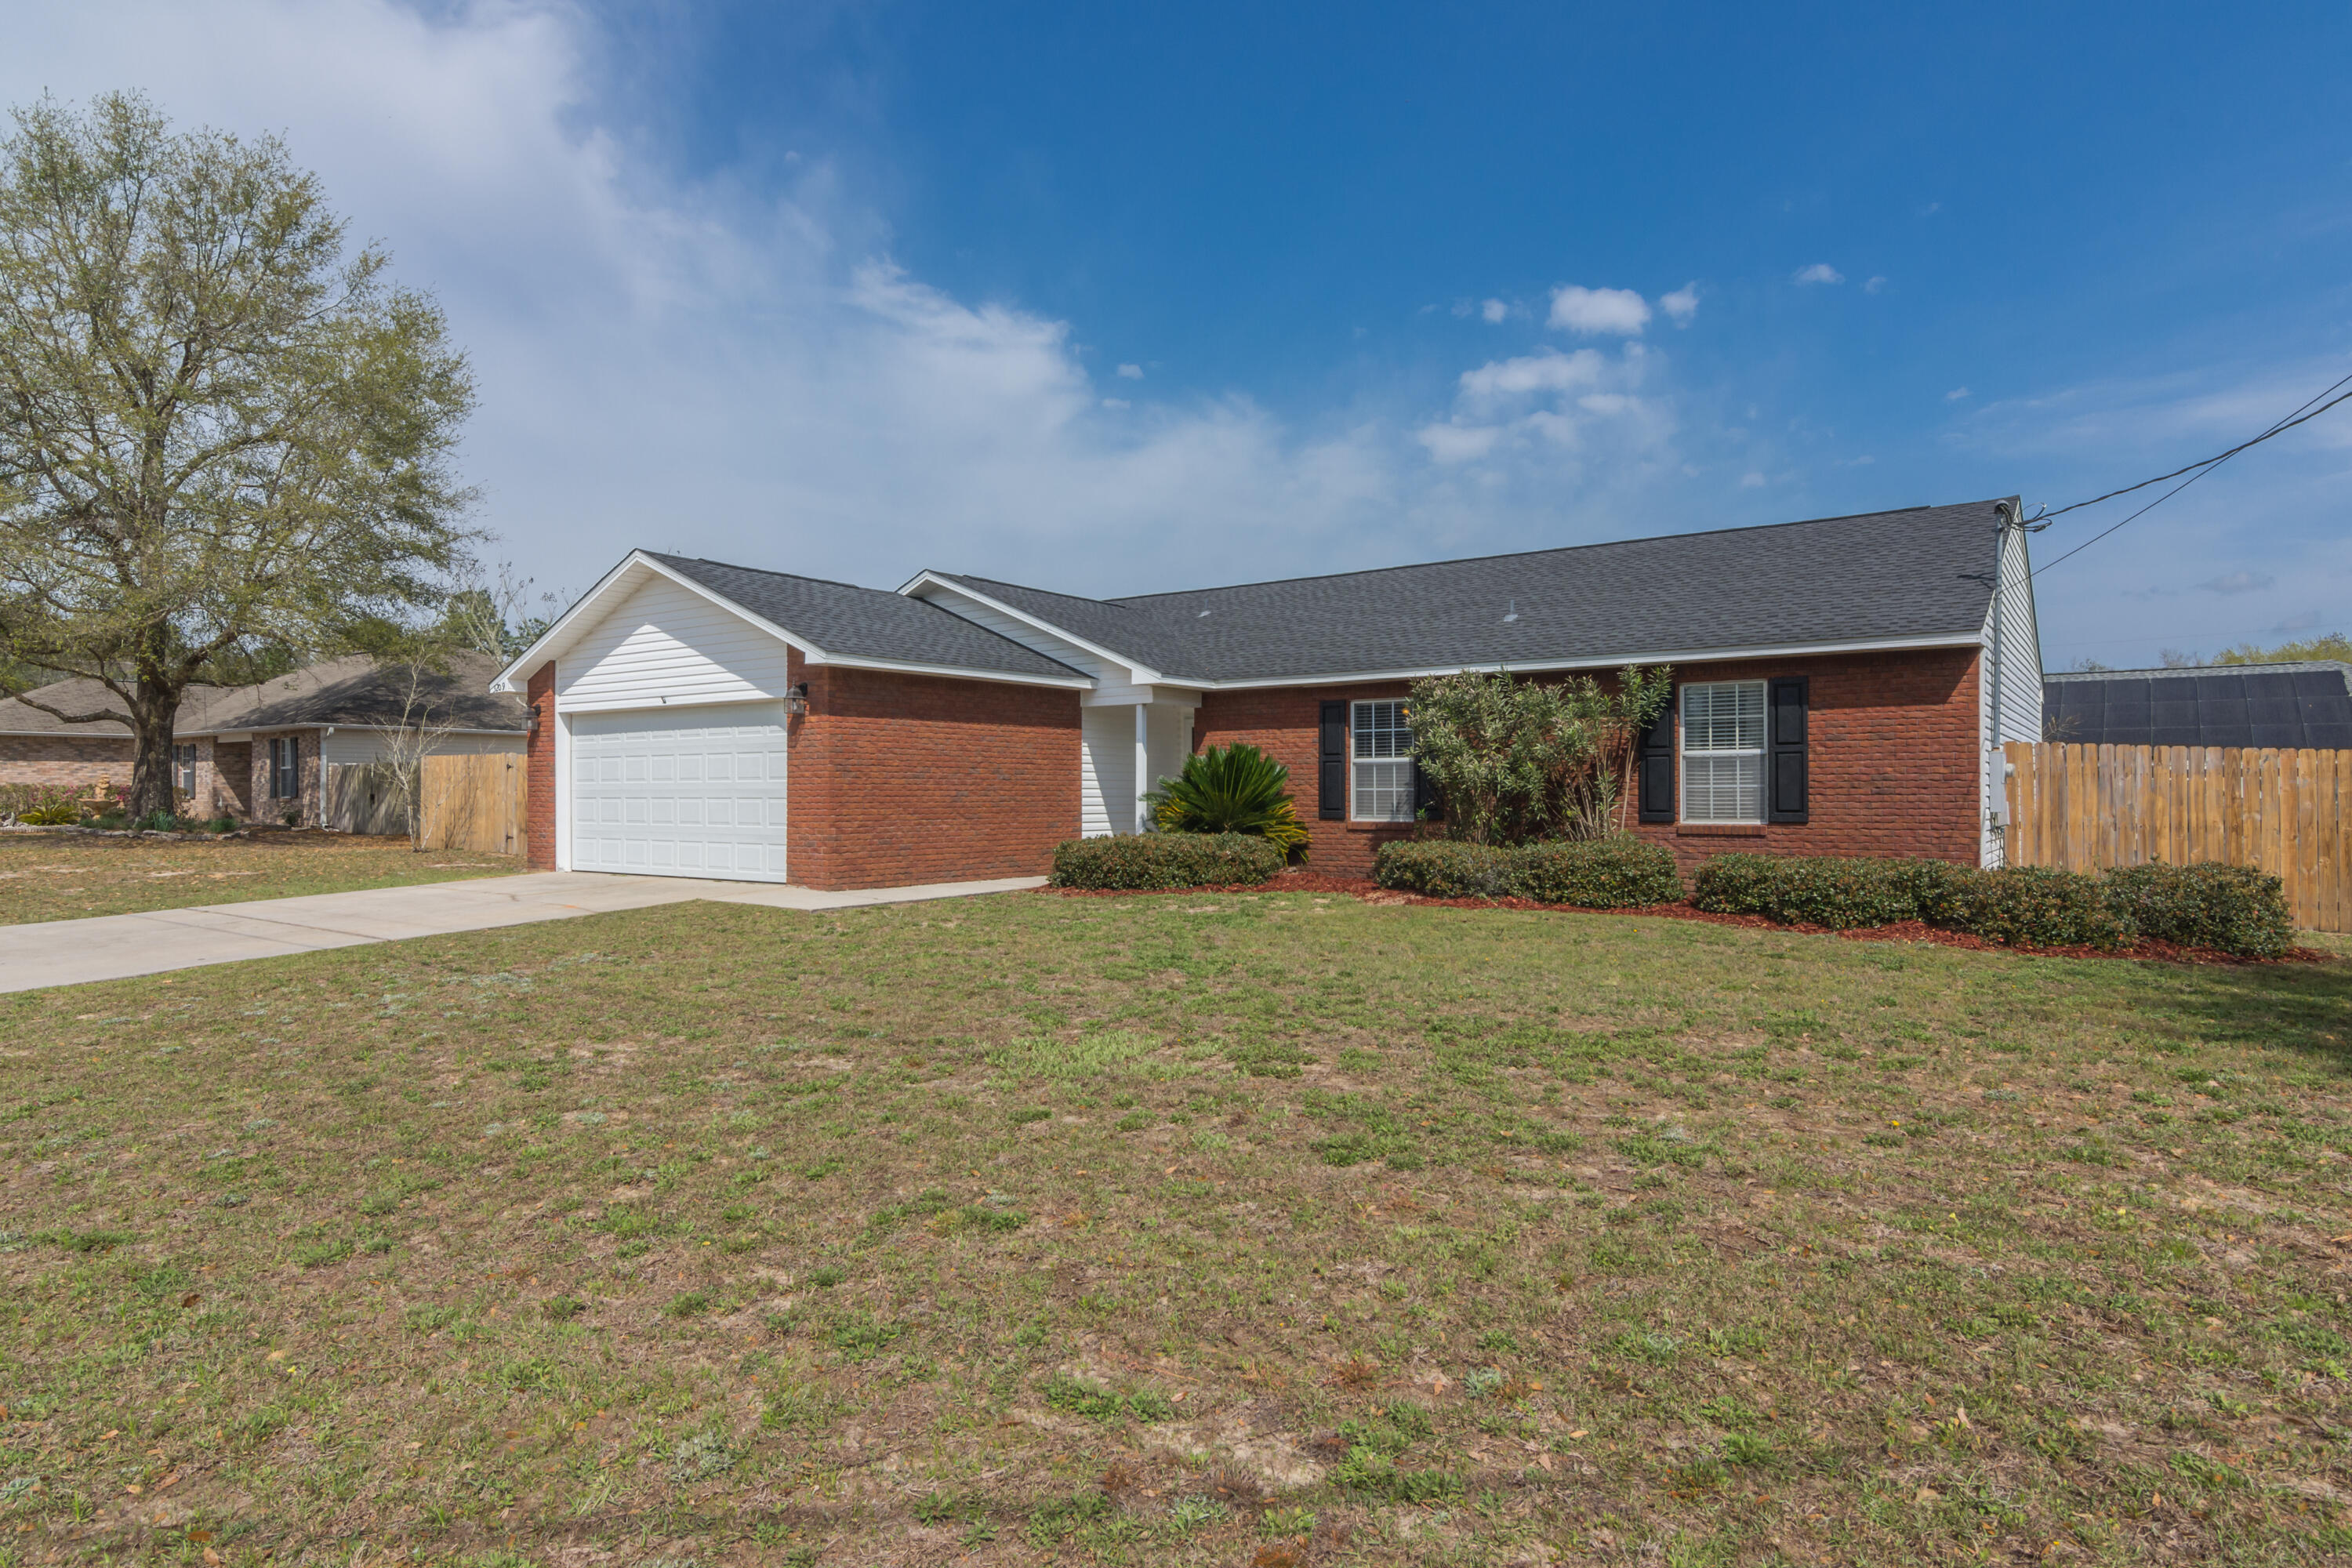 Photo of home for sale at 3209 Skynight, Crestview FL